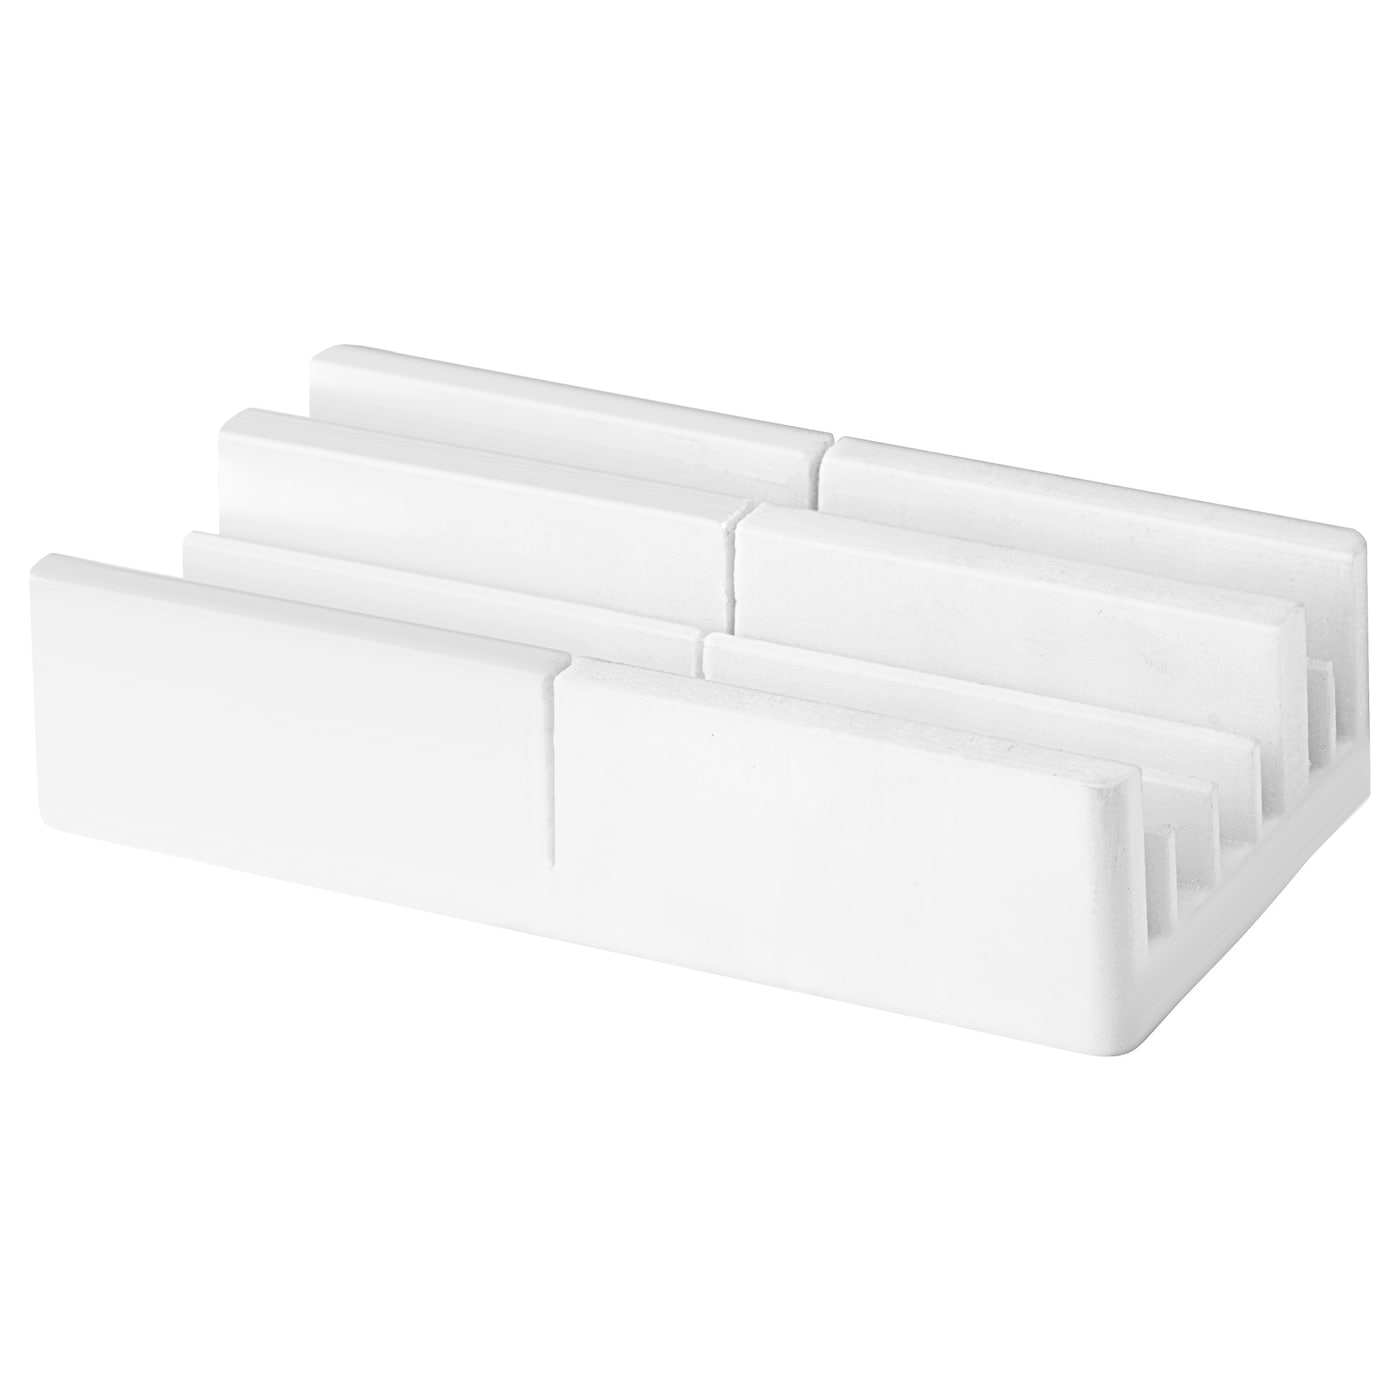 IKEA VIDGA cutting box Makes it easy to cut VIDGA curtain rails to the desired length.